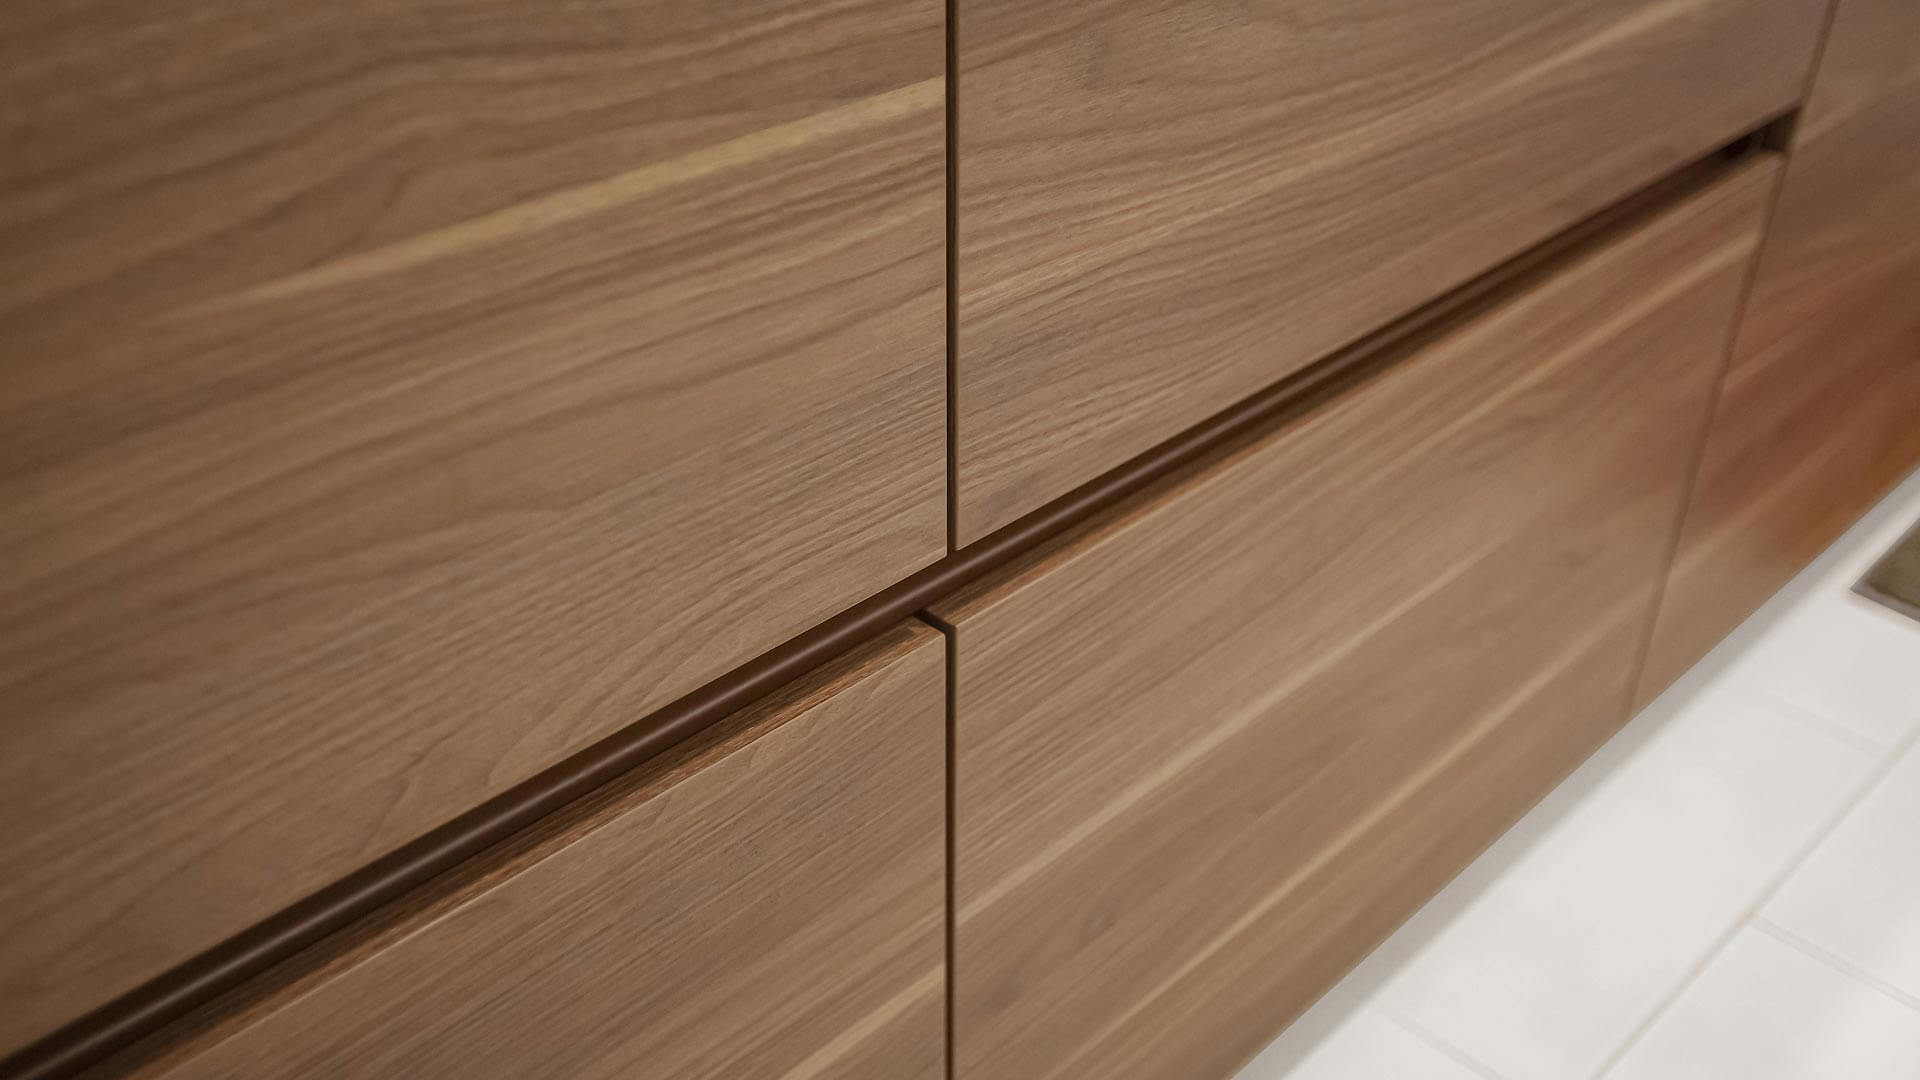 Kitchen cabinet bases comprise wood veneer clad drawers with integrated drawer pull detail - Bridge House - Fennville, Michigan - Lake Michigan